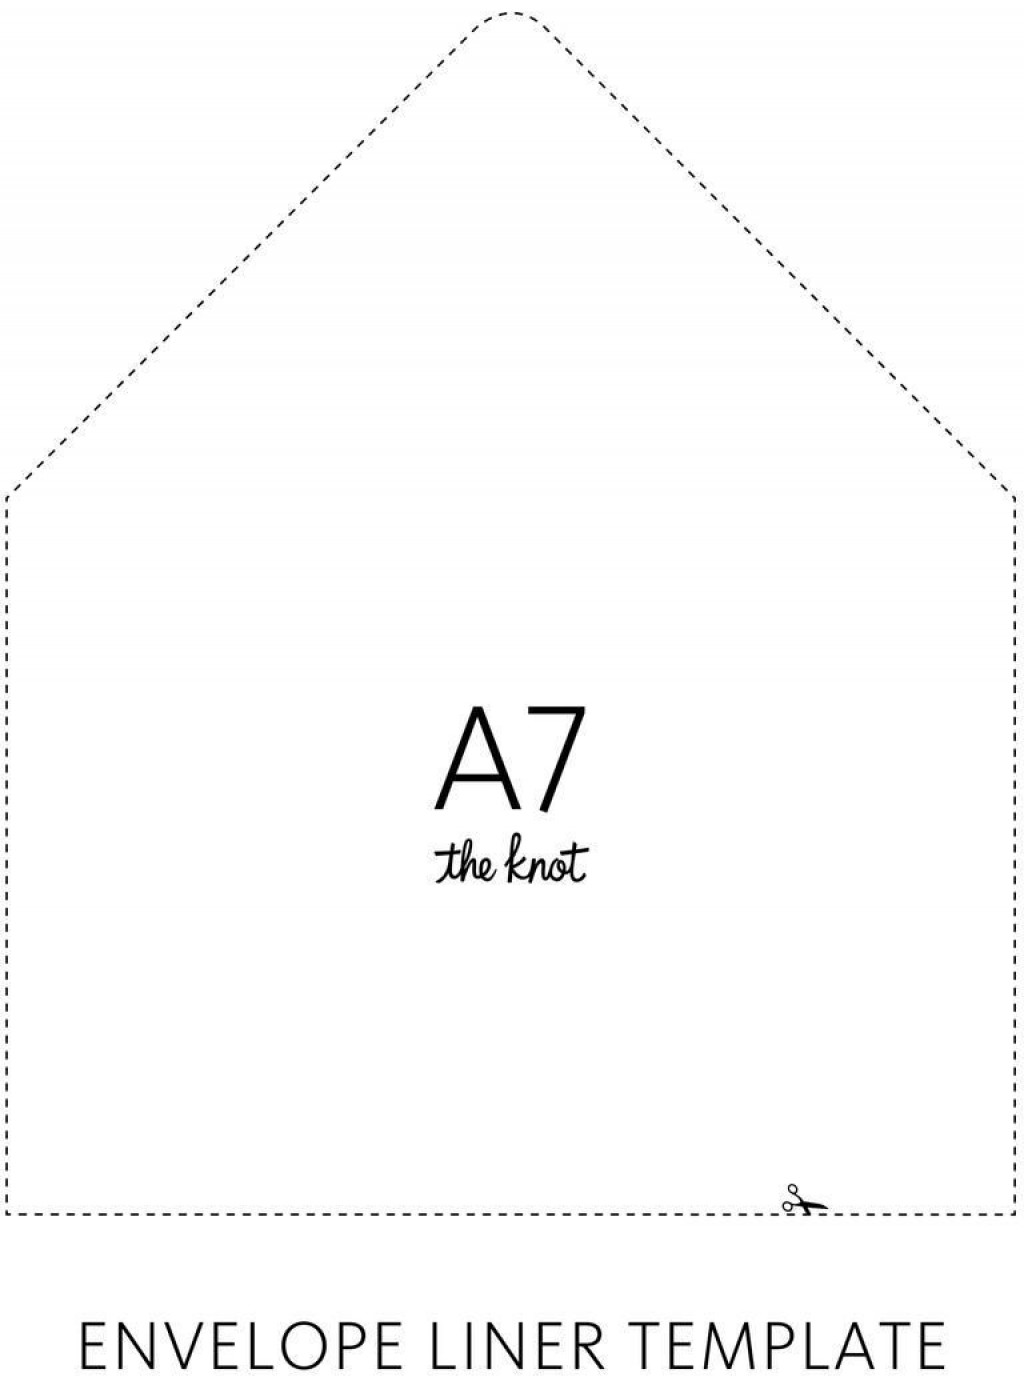 003 Sensational A7 Envelope Liner Template Free High Def Large